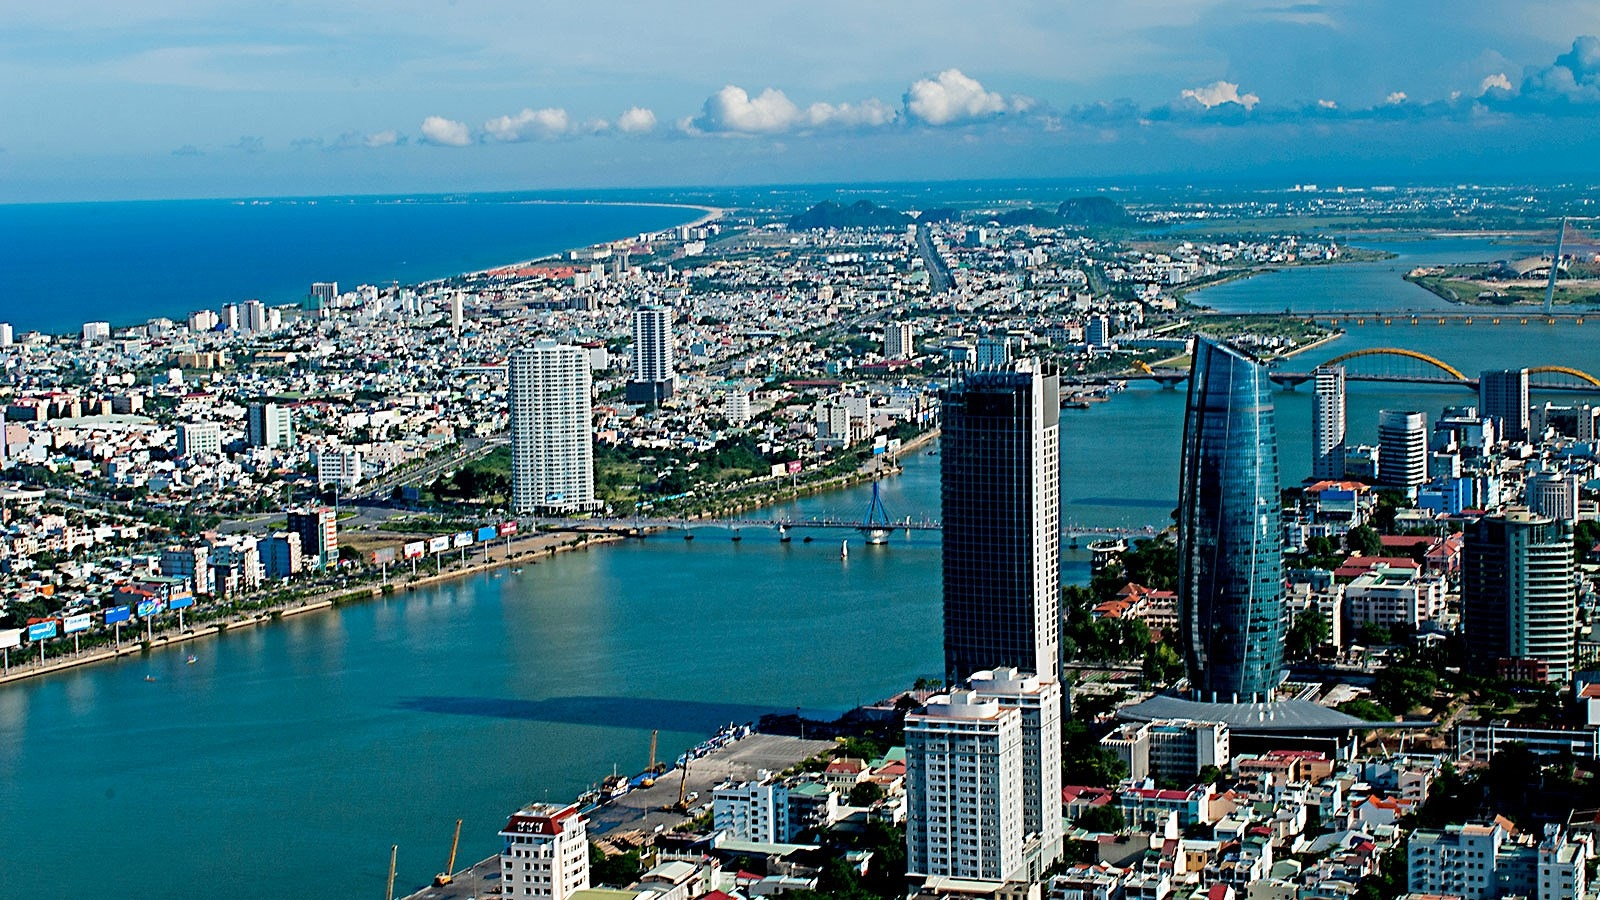 central real estate in vietnam is expected to attract investment capital